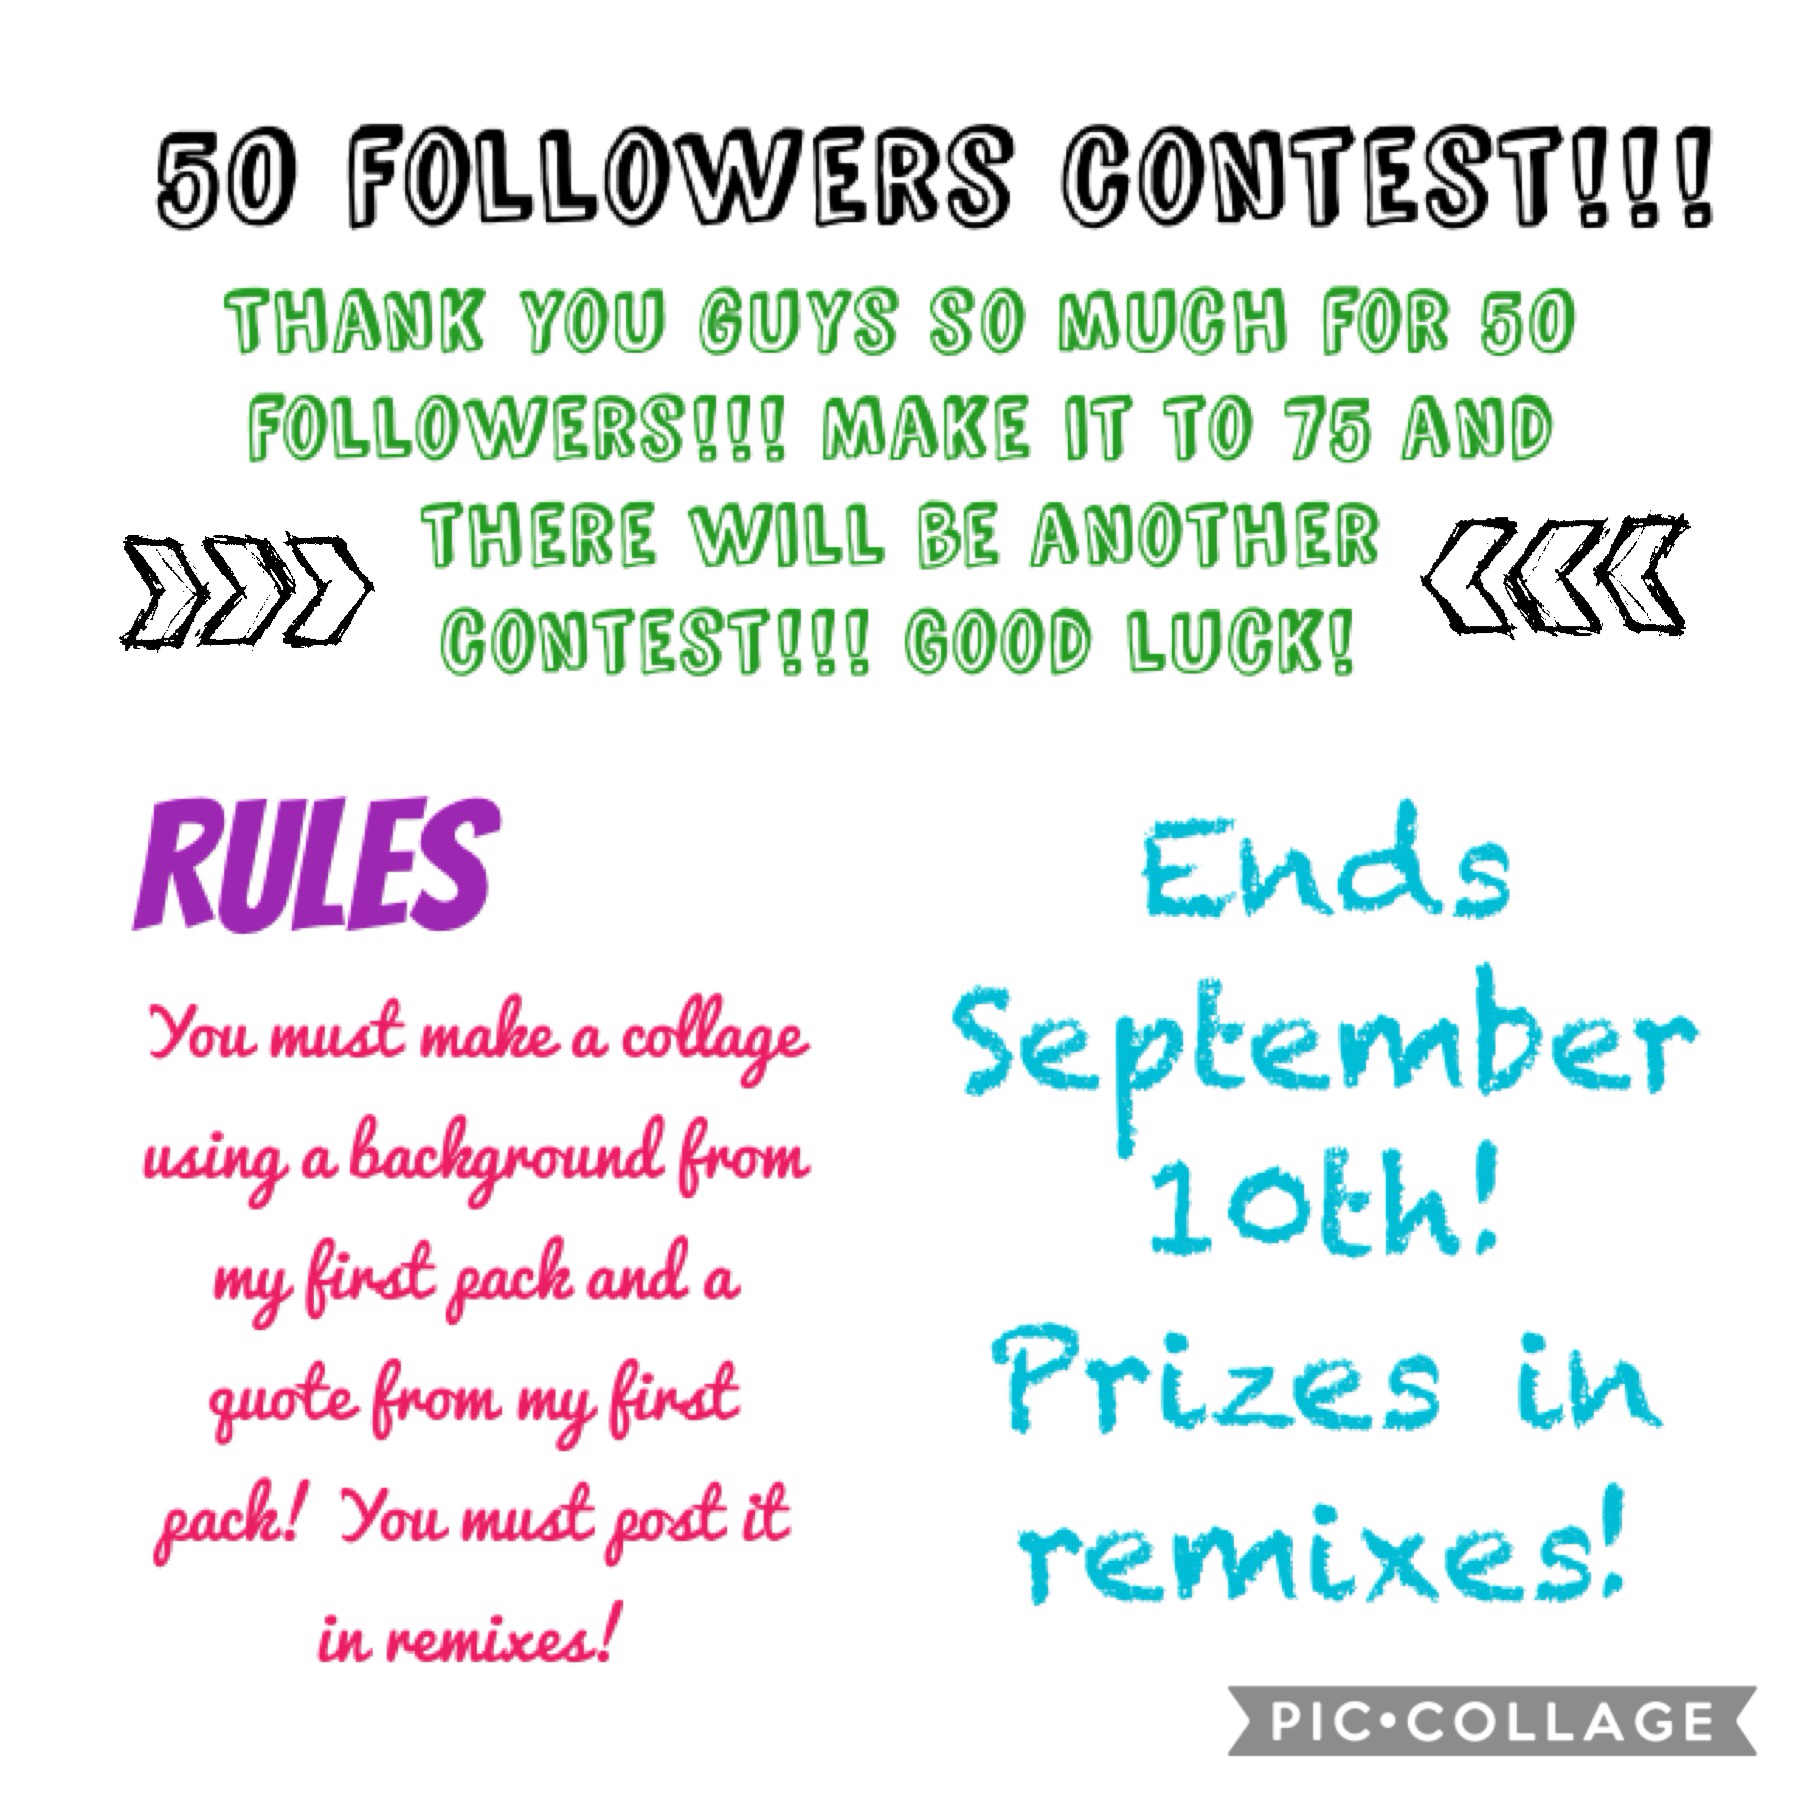 You can only post on one account! Good luck. Prizes in remixes